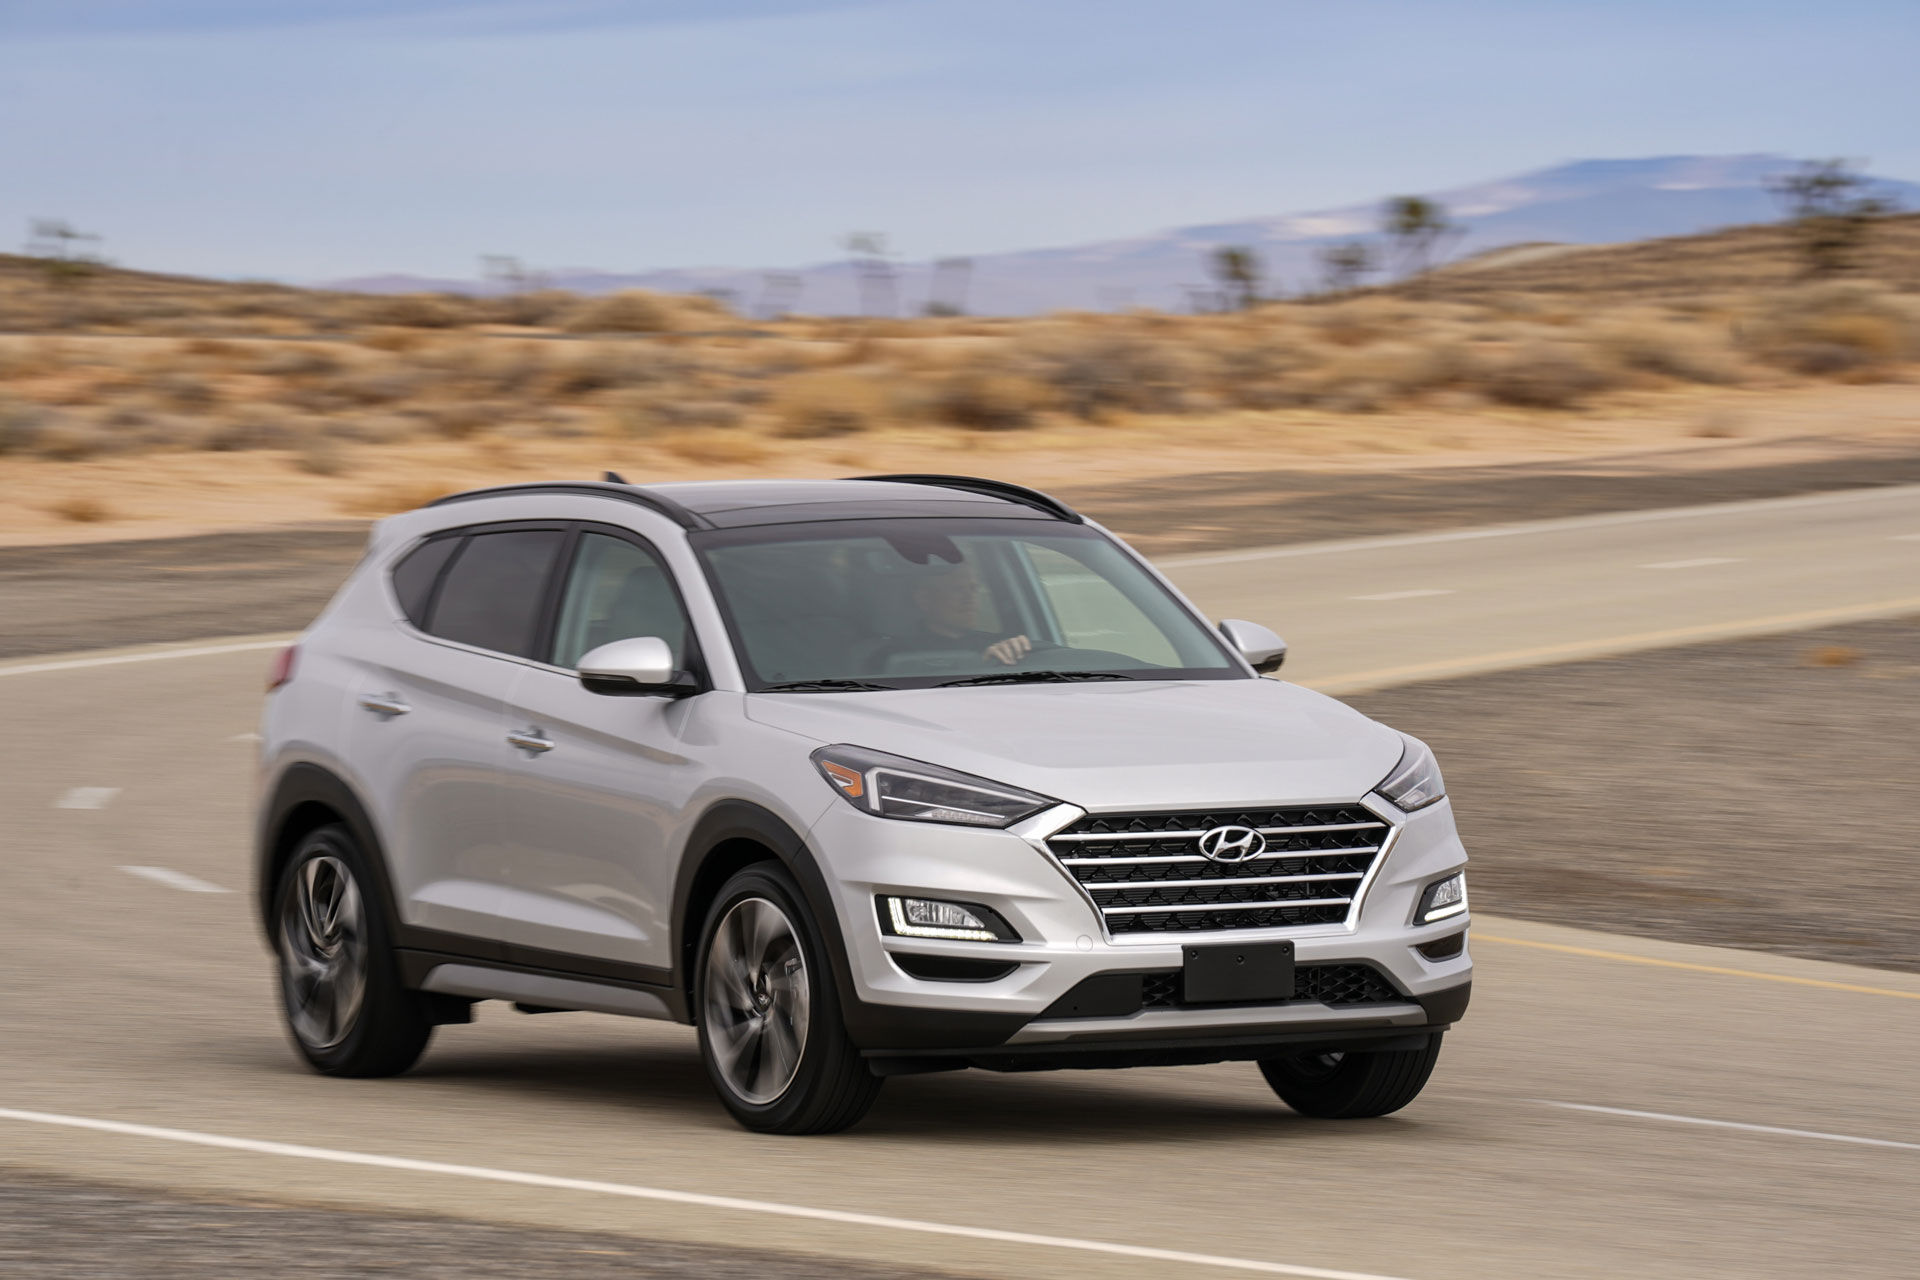 2019 Hyundai Tucson safety,